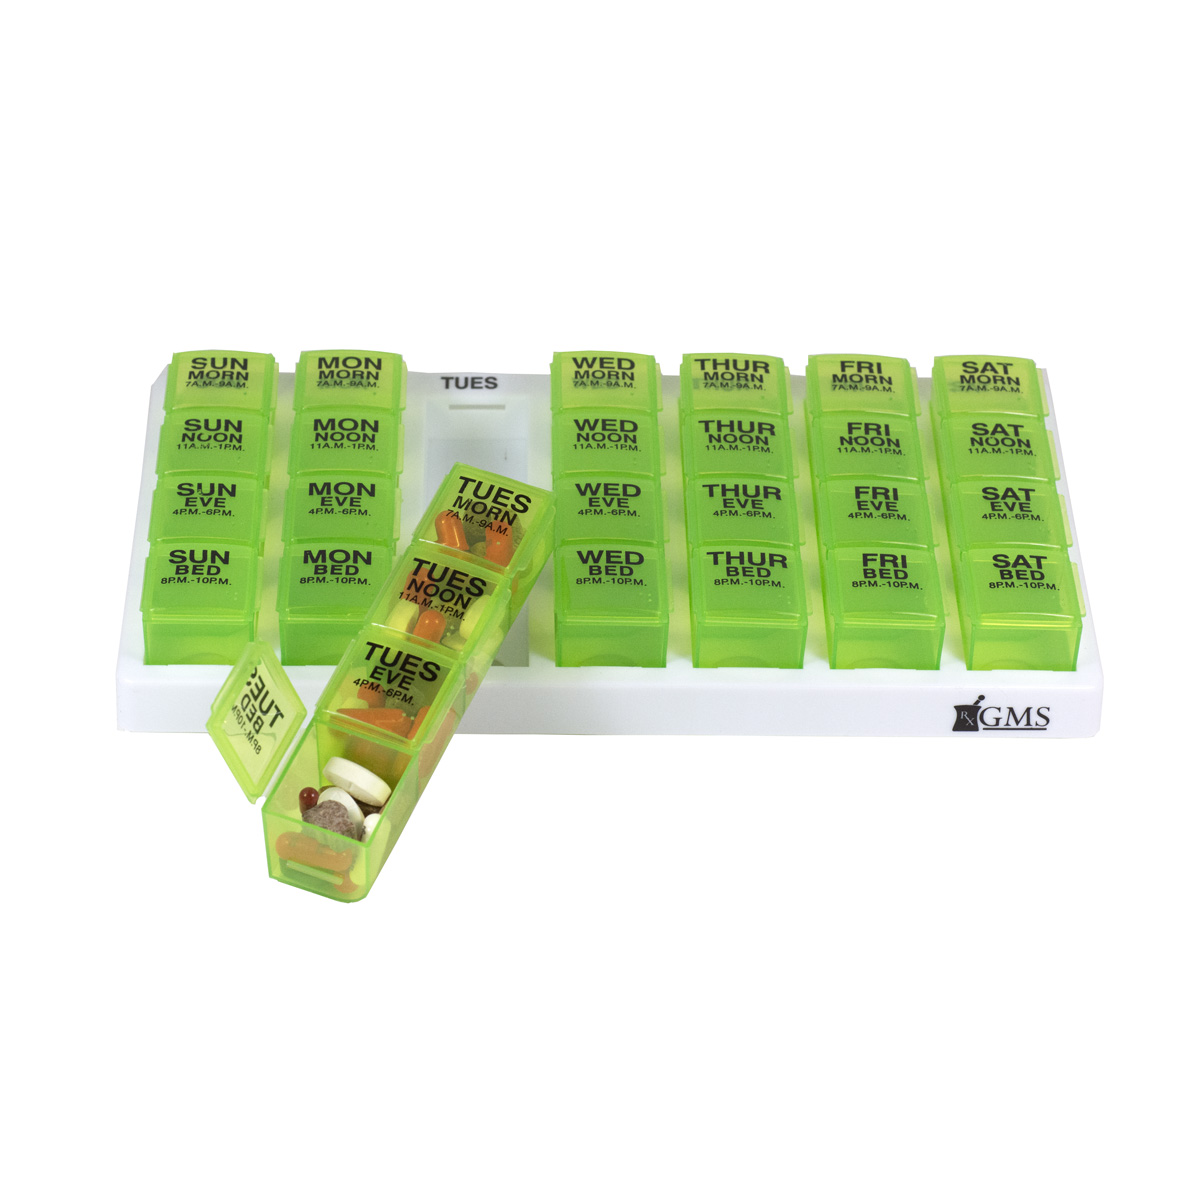 4x/Day GMS Brand Pill Organizer with Push Out Daily Pods - Green